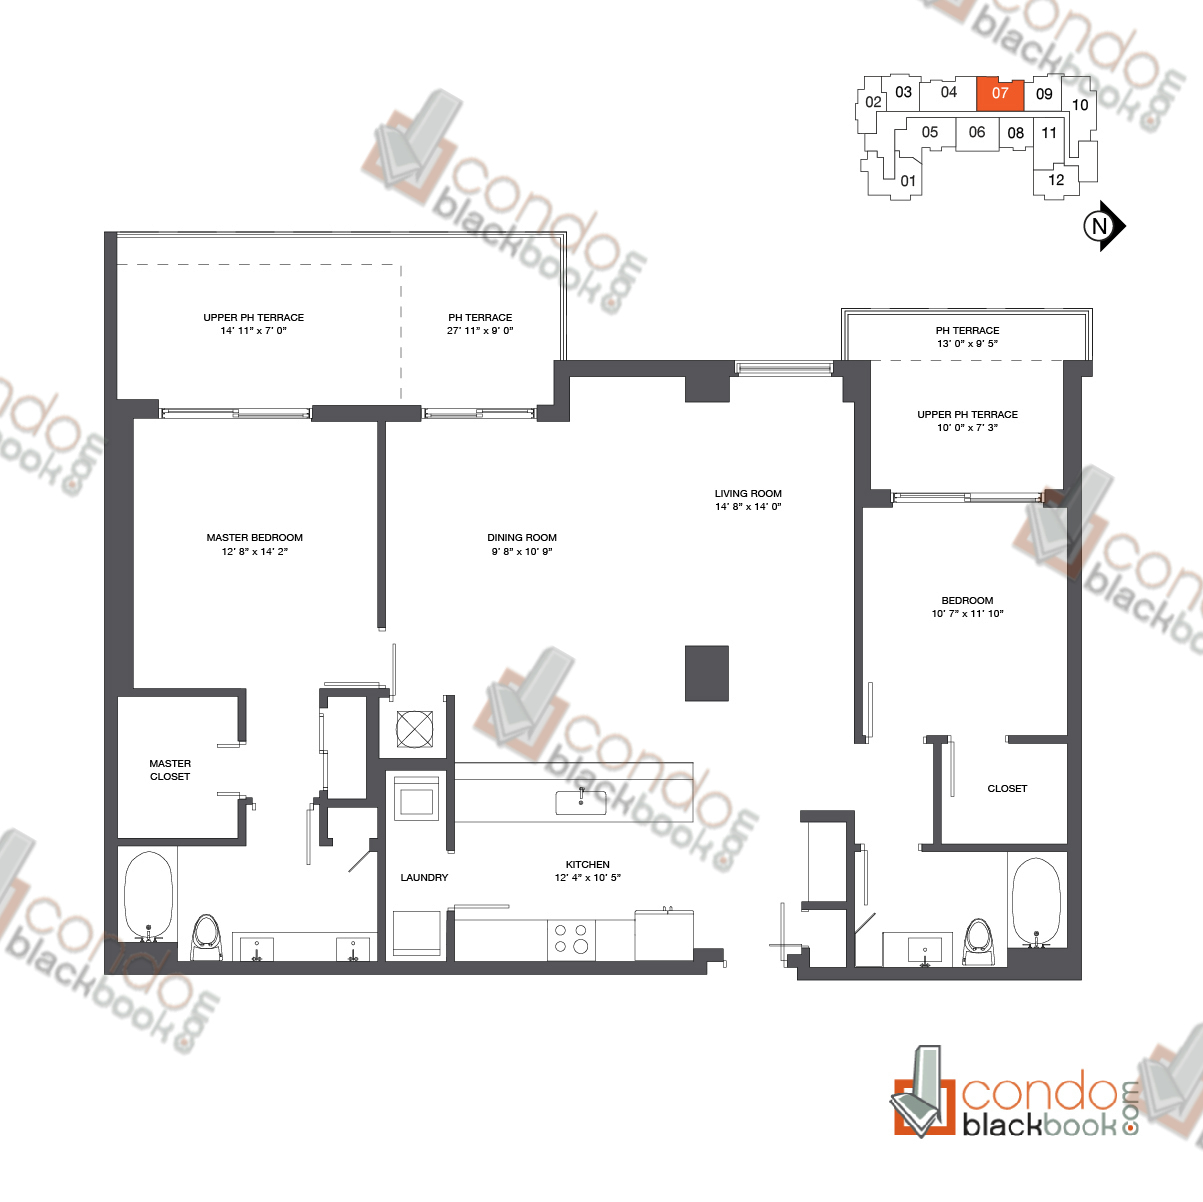 Floor plan for Nine at Mary Brickell Village Brickell Miami, model Penthouse 07, line 07, 2/2 bedrooms, 1,457 sq ft